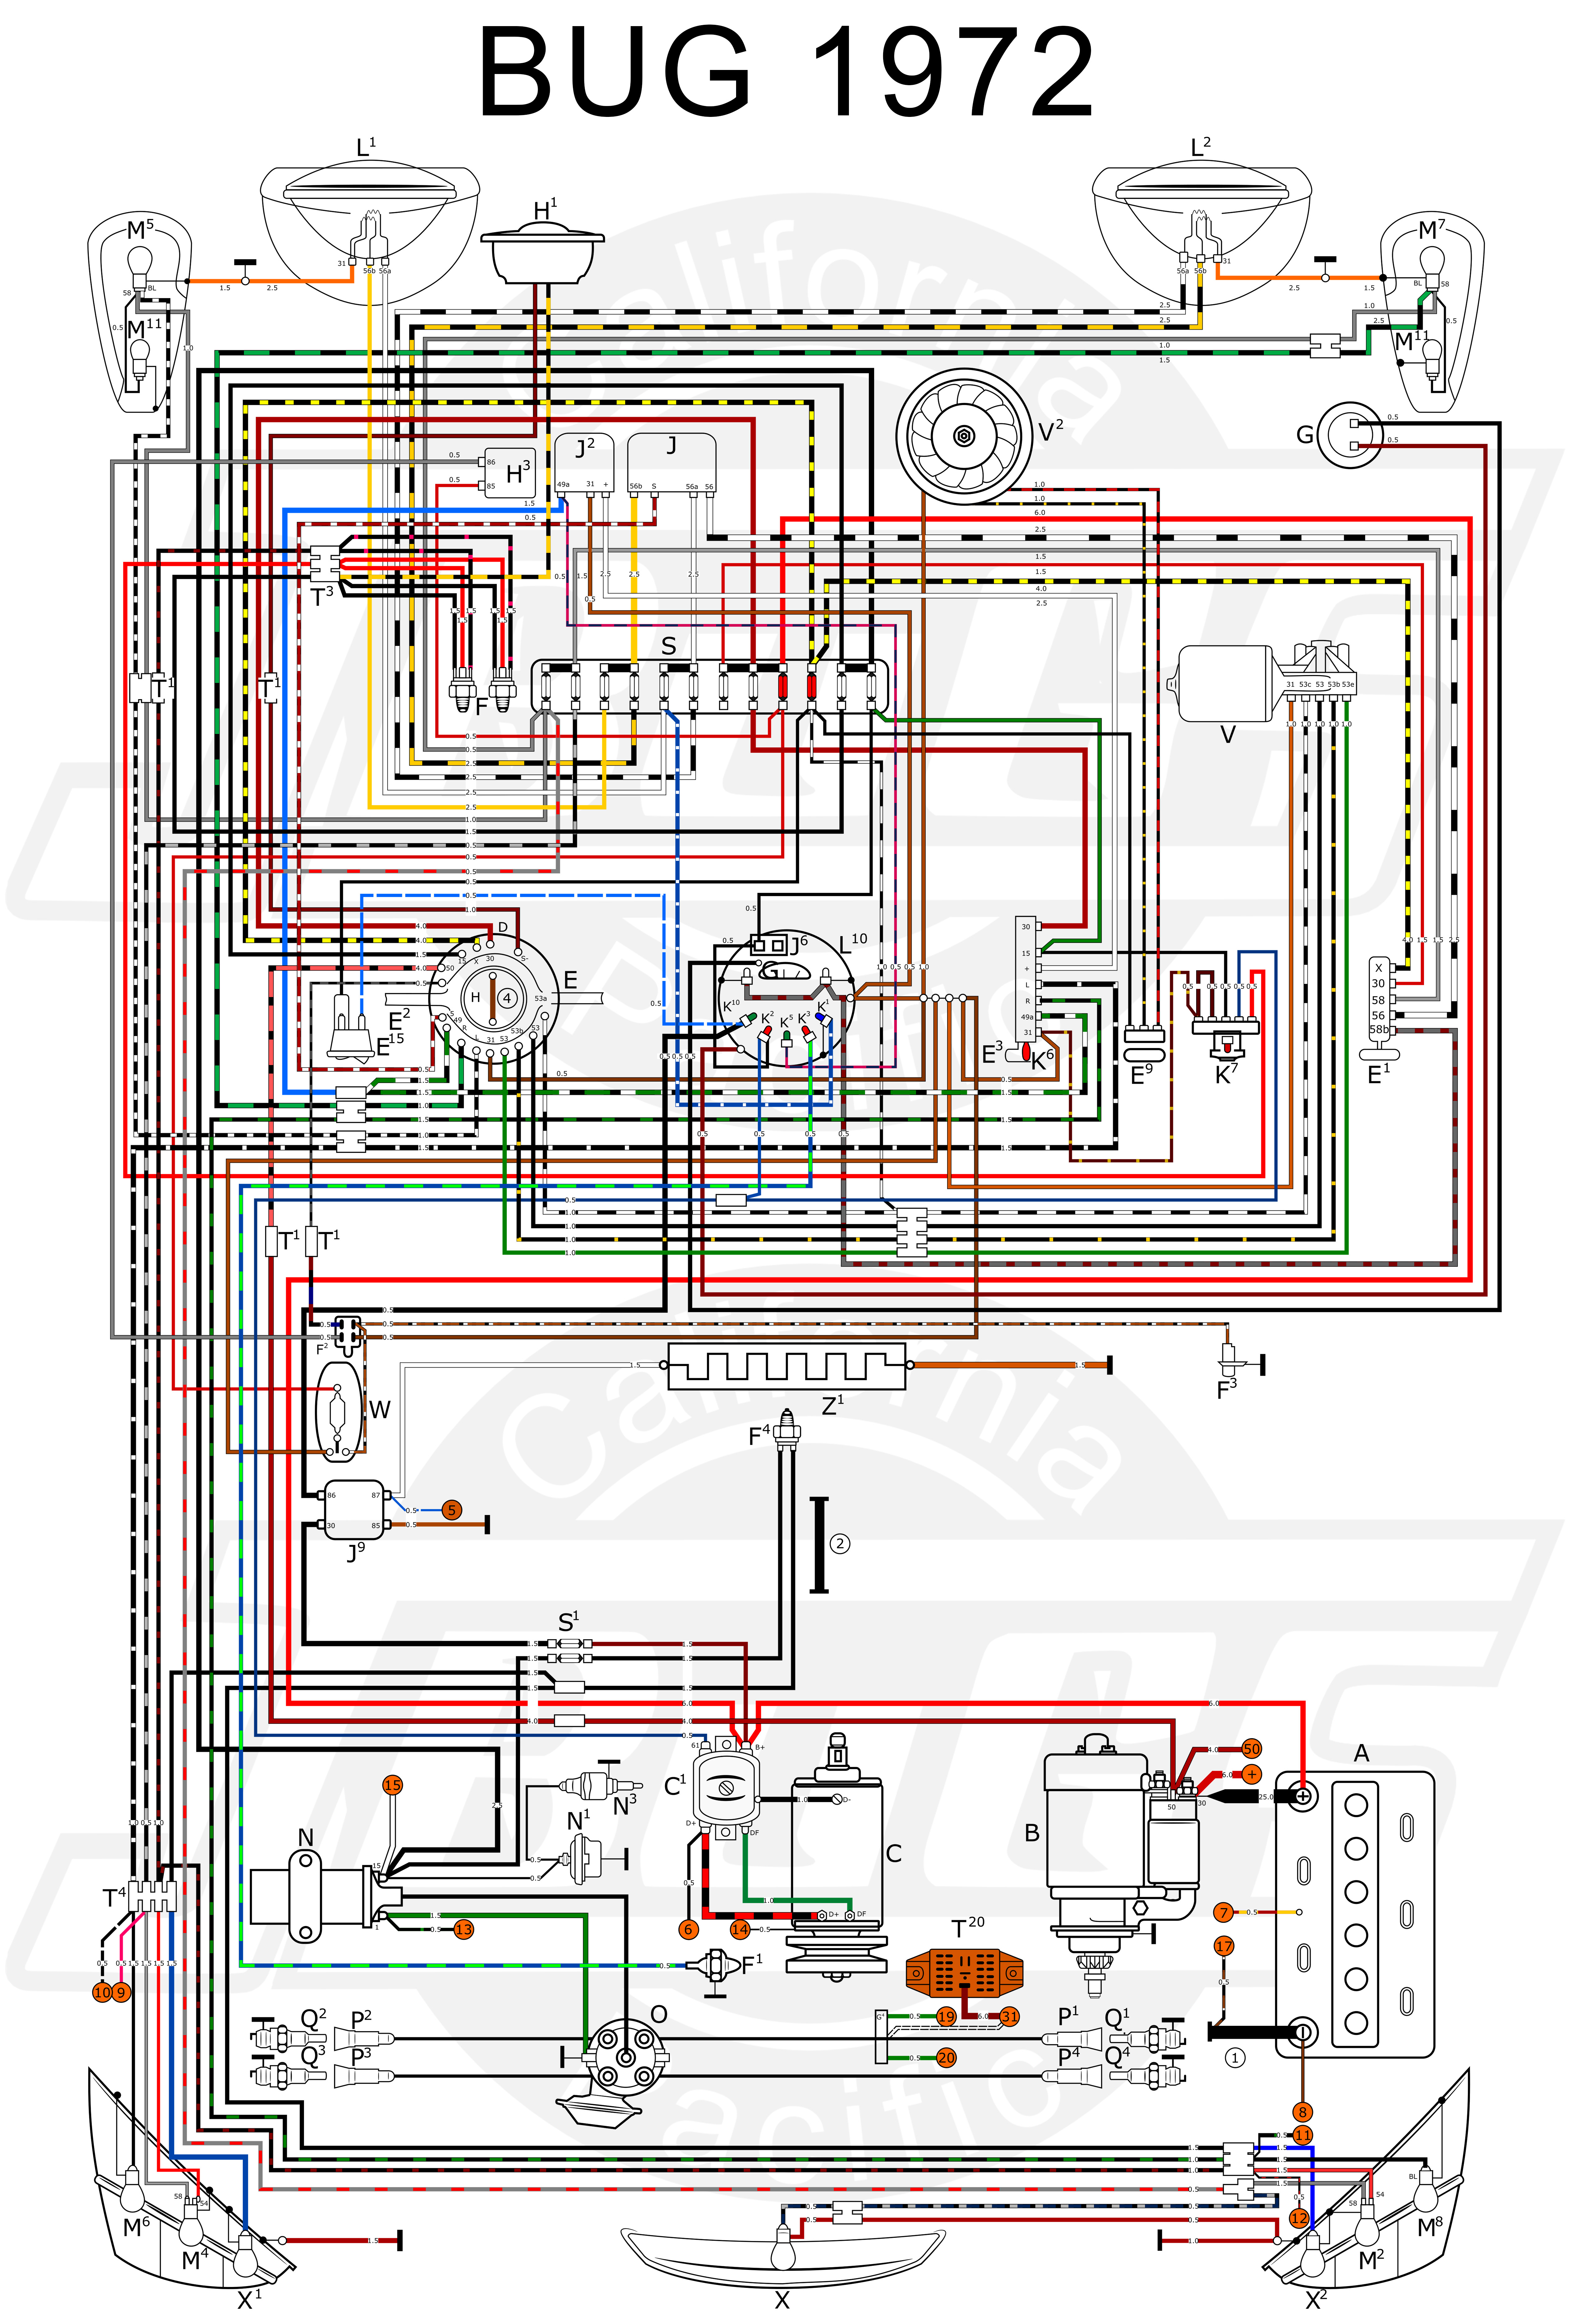 Touran Fuse Box Diagram Manual Of Wiring Volkswagen Starting Know About U2022 Rh Benjdesigns Co Vw 2013